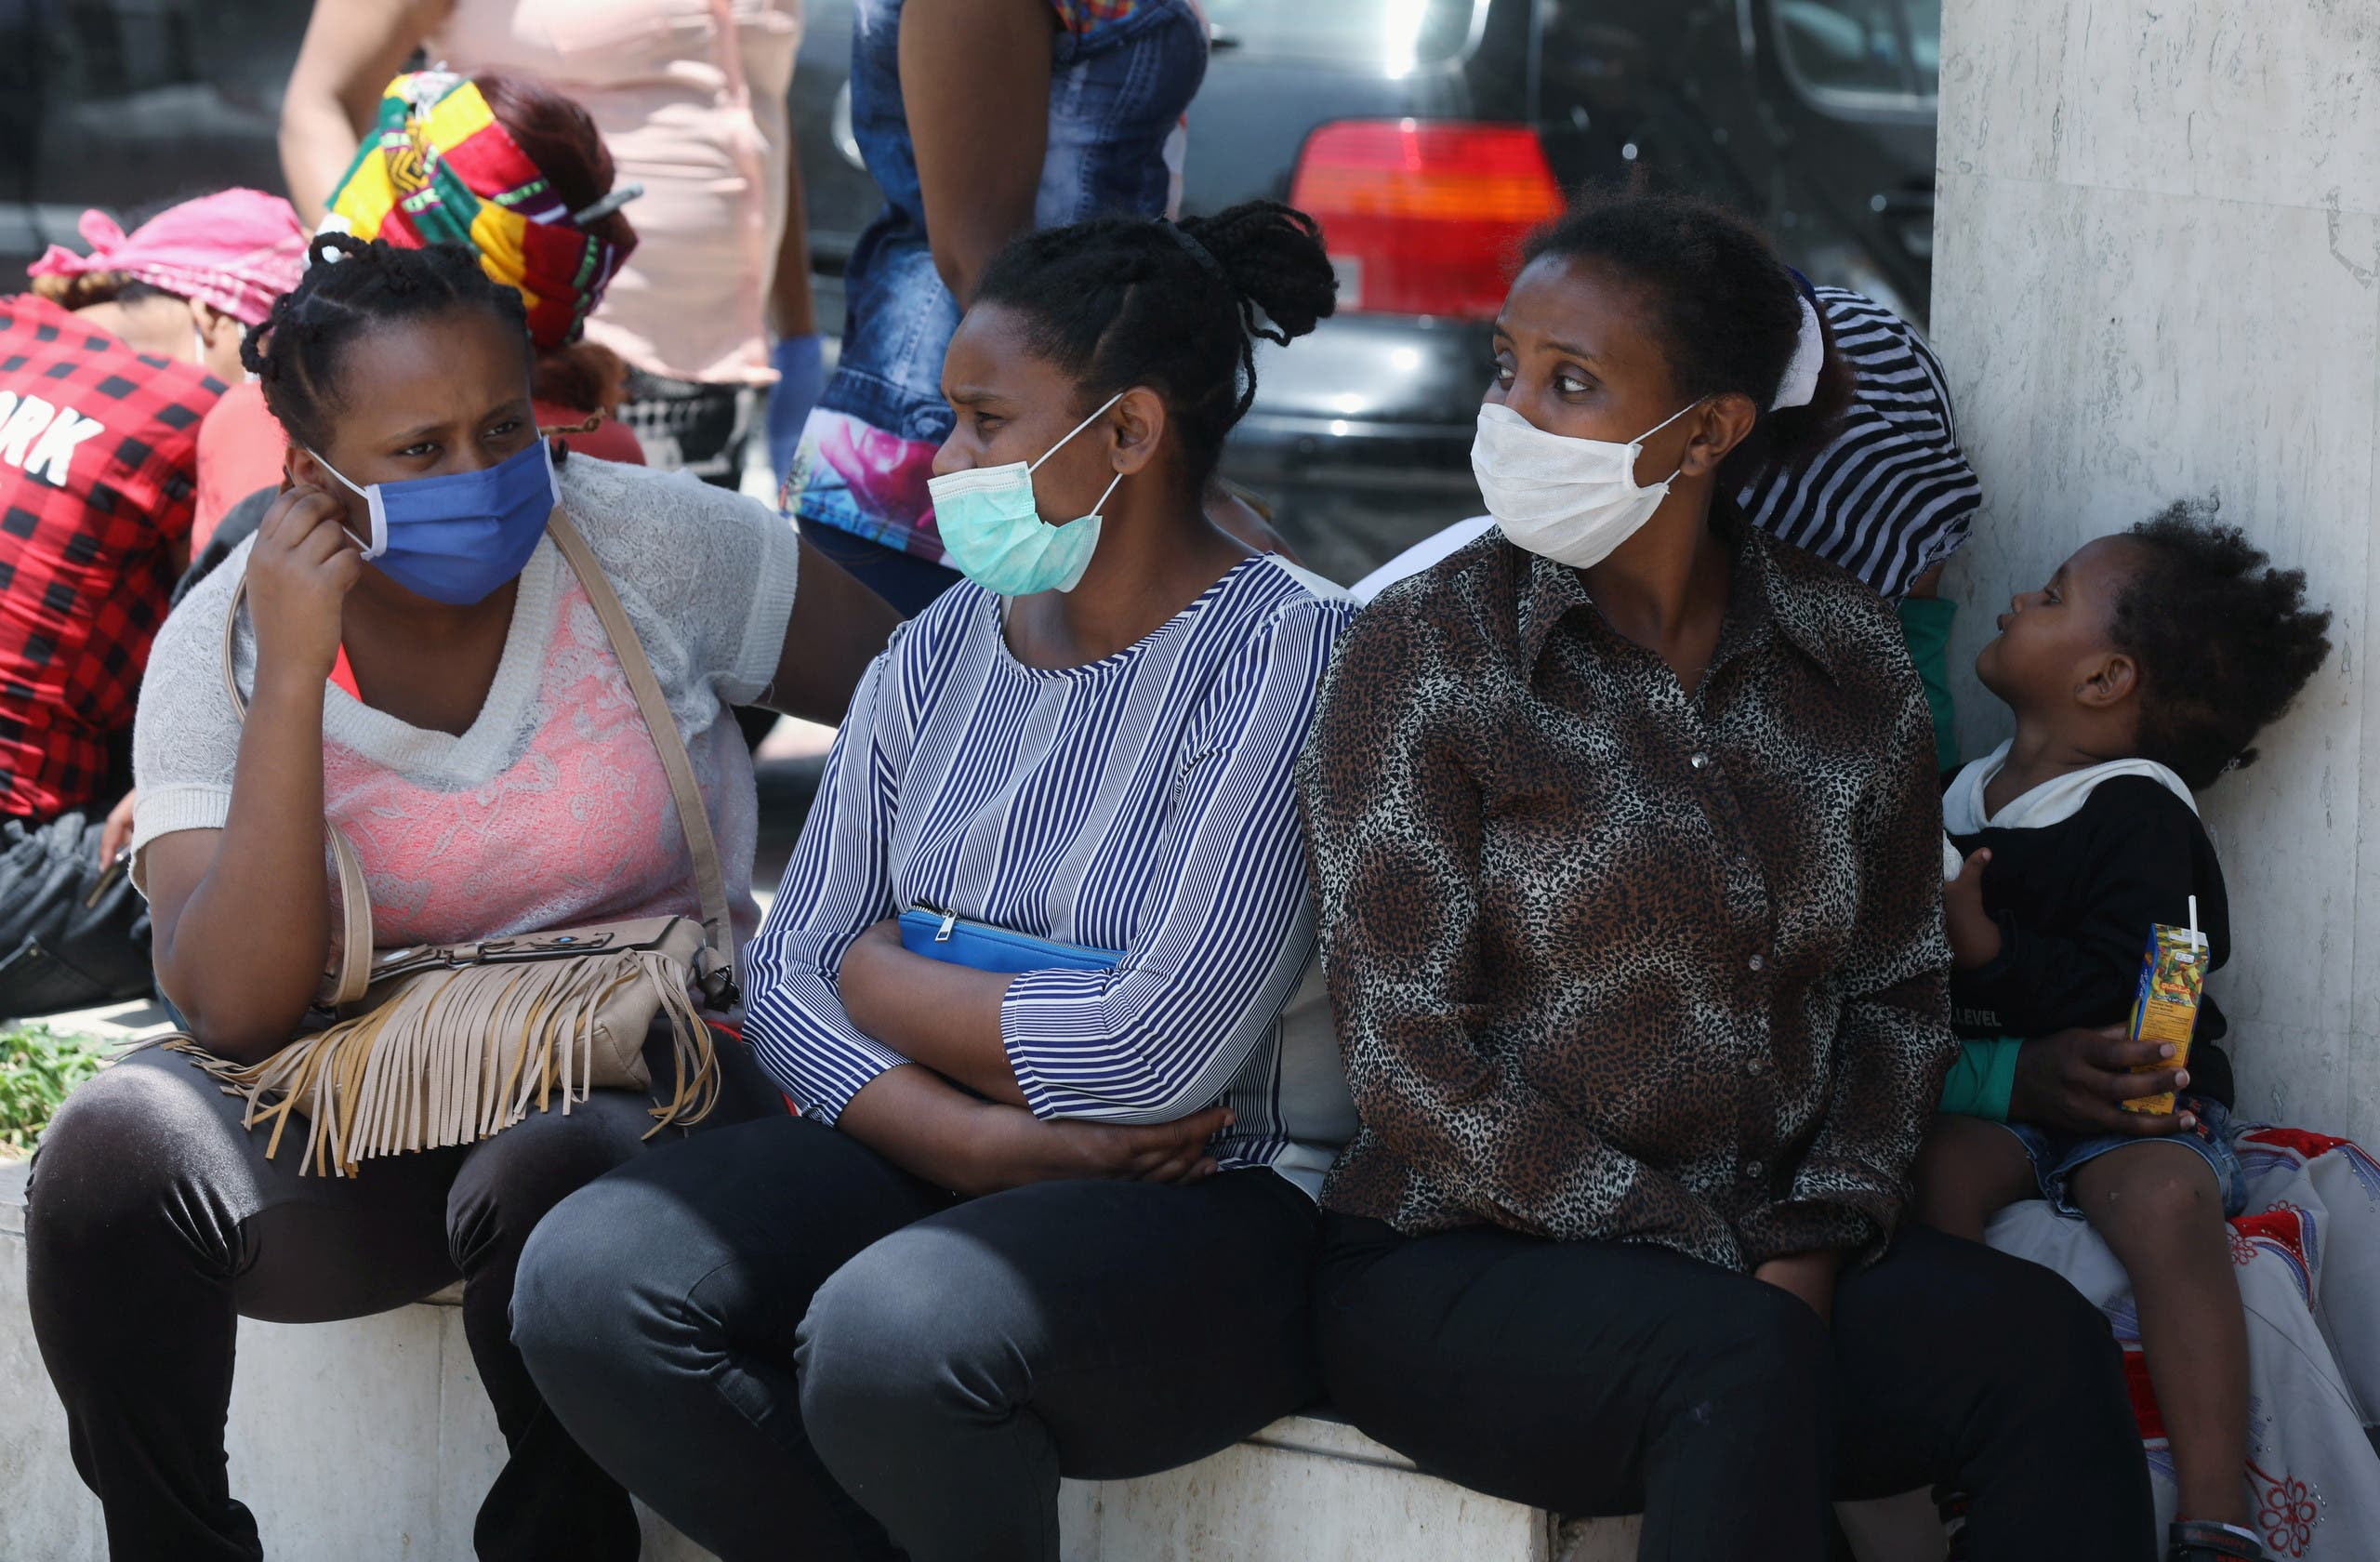 Ethiopian domestic workers wearing masks sit together with their belongings in front of the Ethiopian consulate in Hazmiyeh, Lebanon, June 8, 2020. (Reuters)